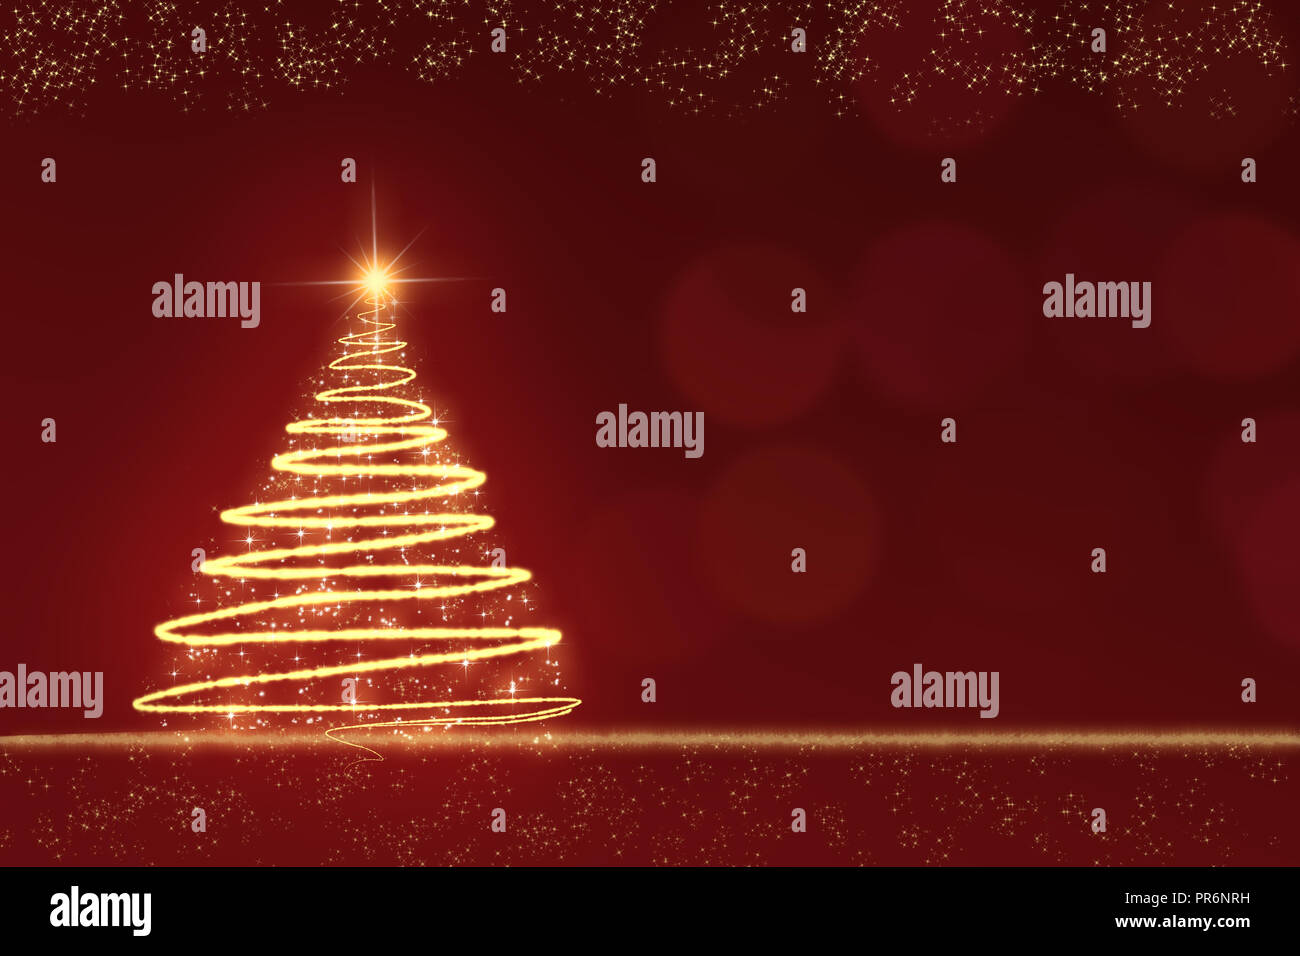 golden sparkling Christmas tree against a red blurred background with golden snowflakes - Stock Image